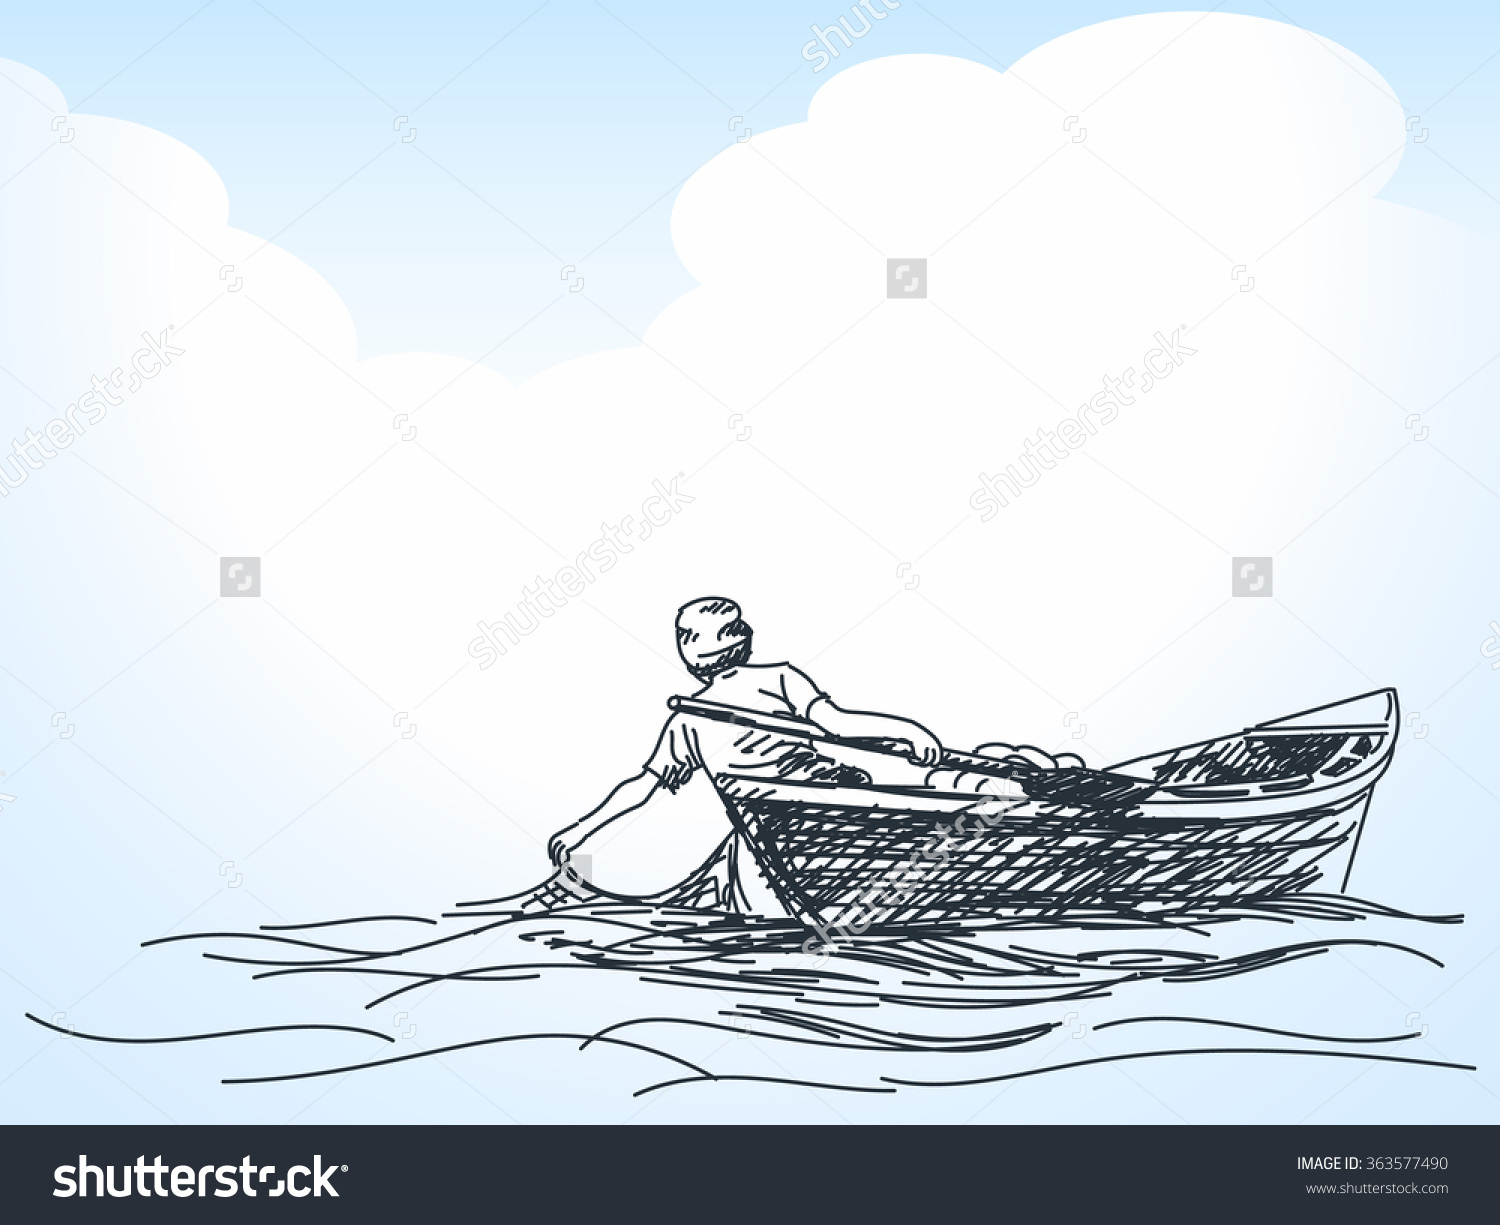 1500x1225 Sketch Of Man Fishing With Net From Boat, Hand Drawn Illustration